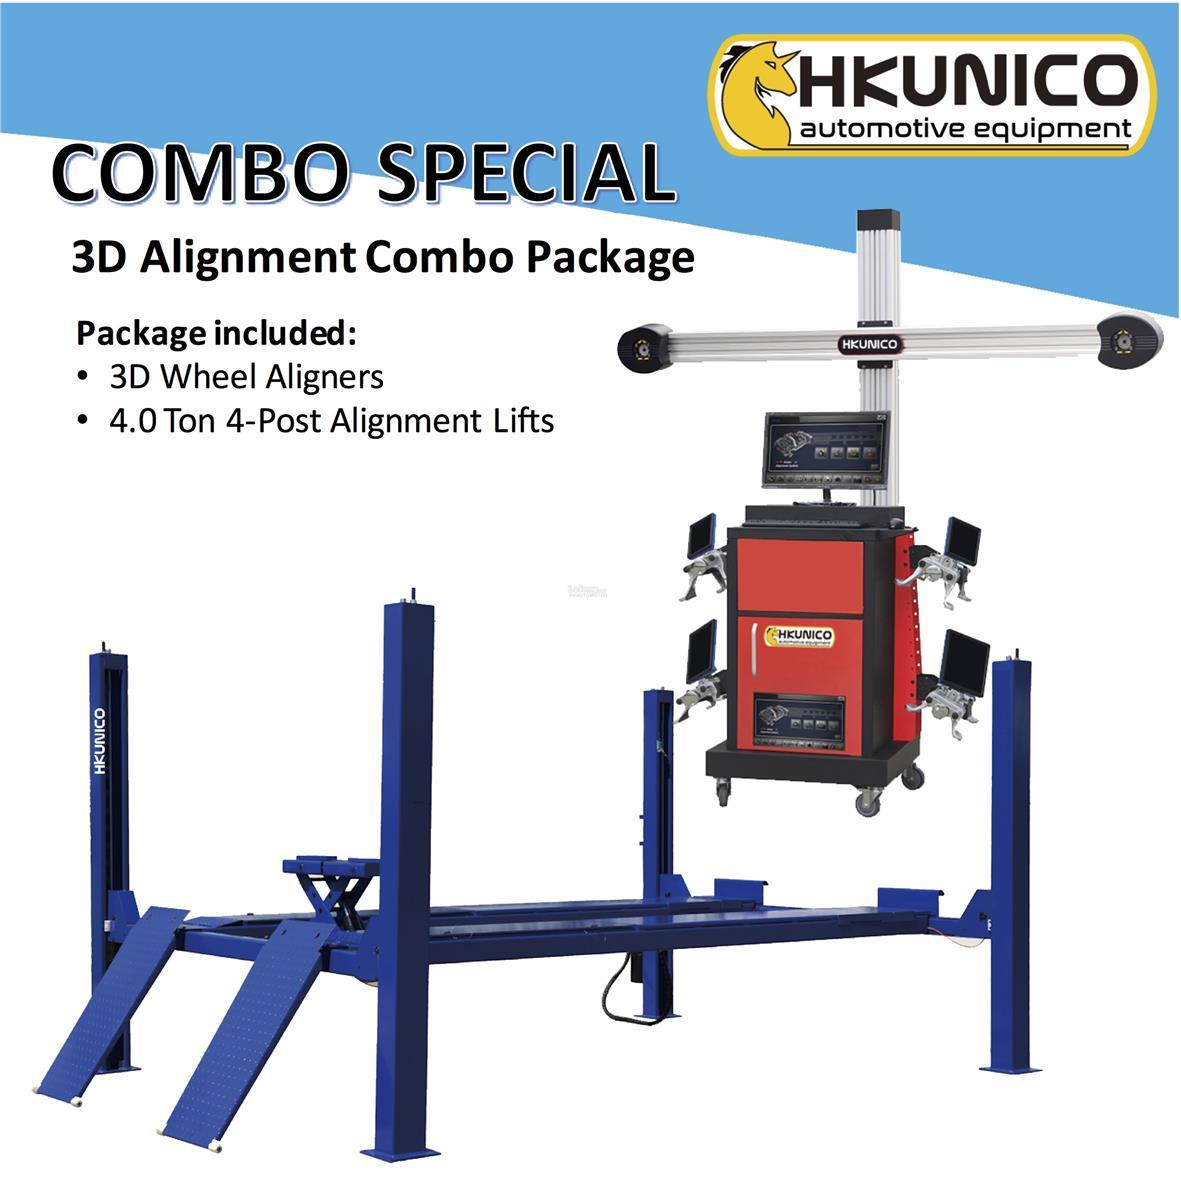 hkunico-3d-alignment-combo-package-hkautomotive-1810-07-HKAUTOMOTIVE@1.jpg